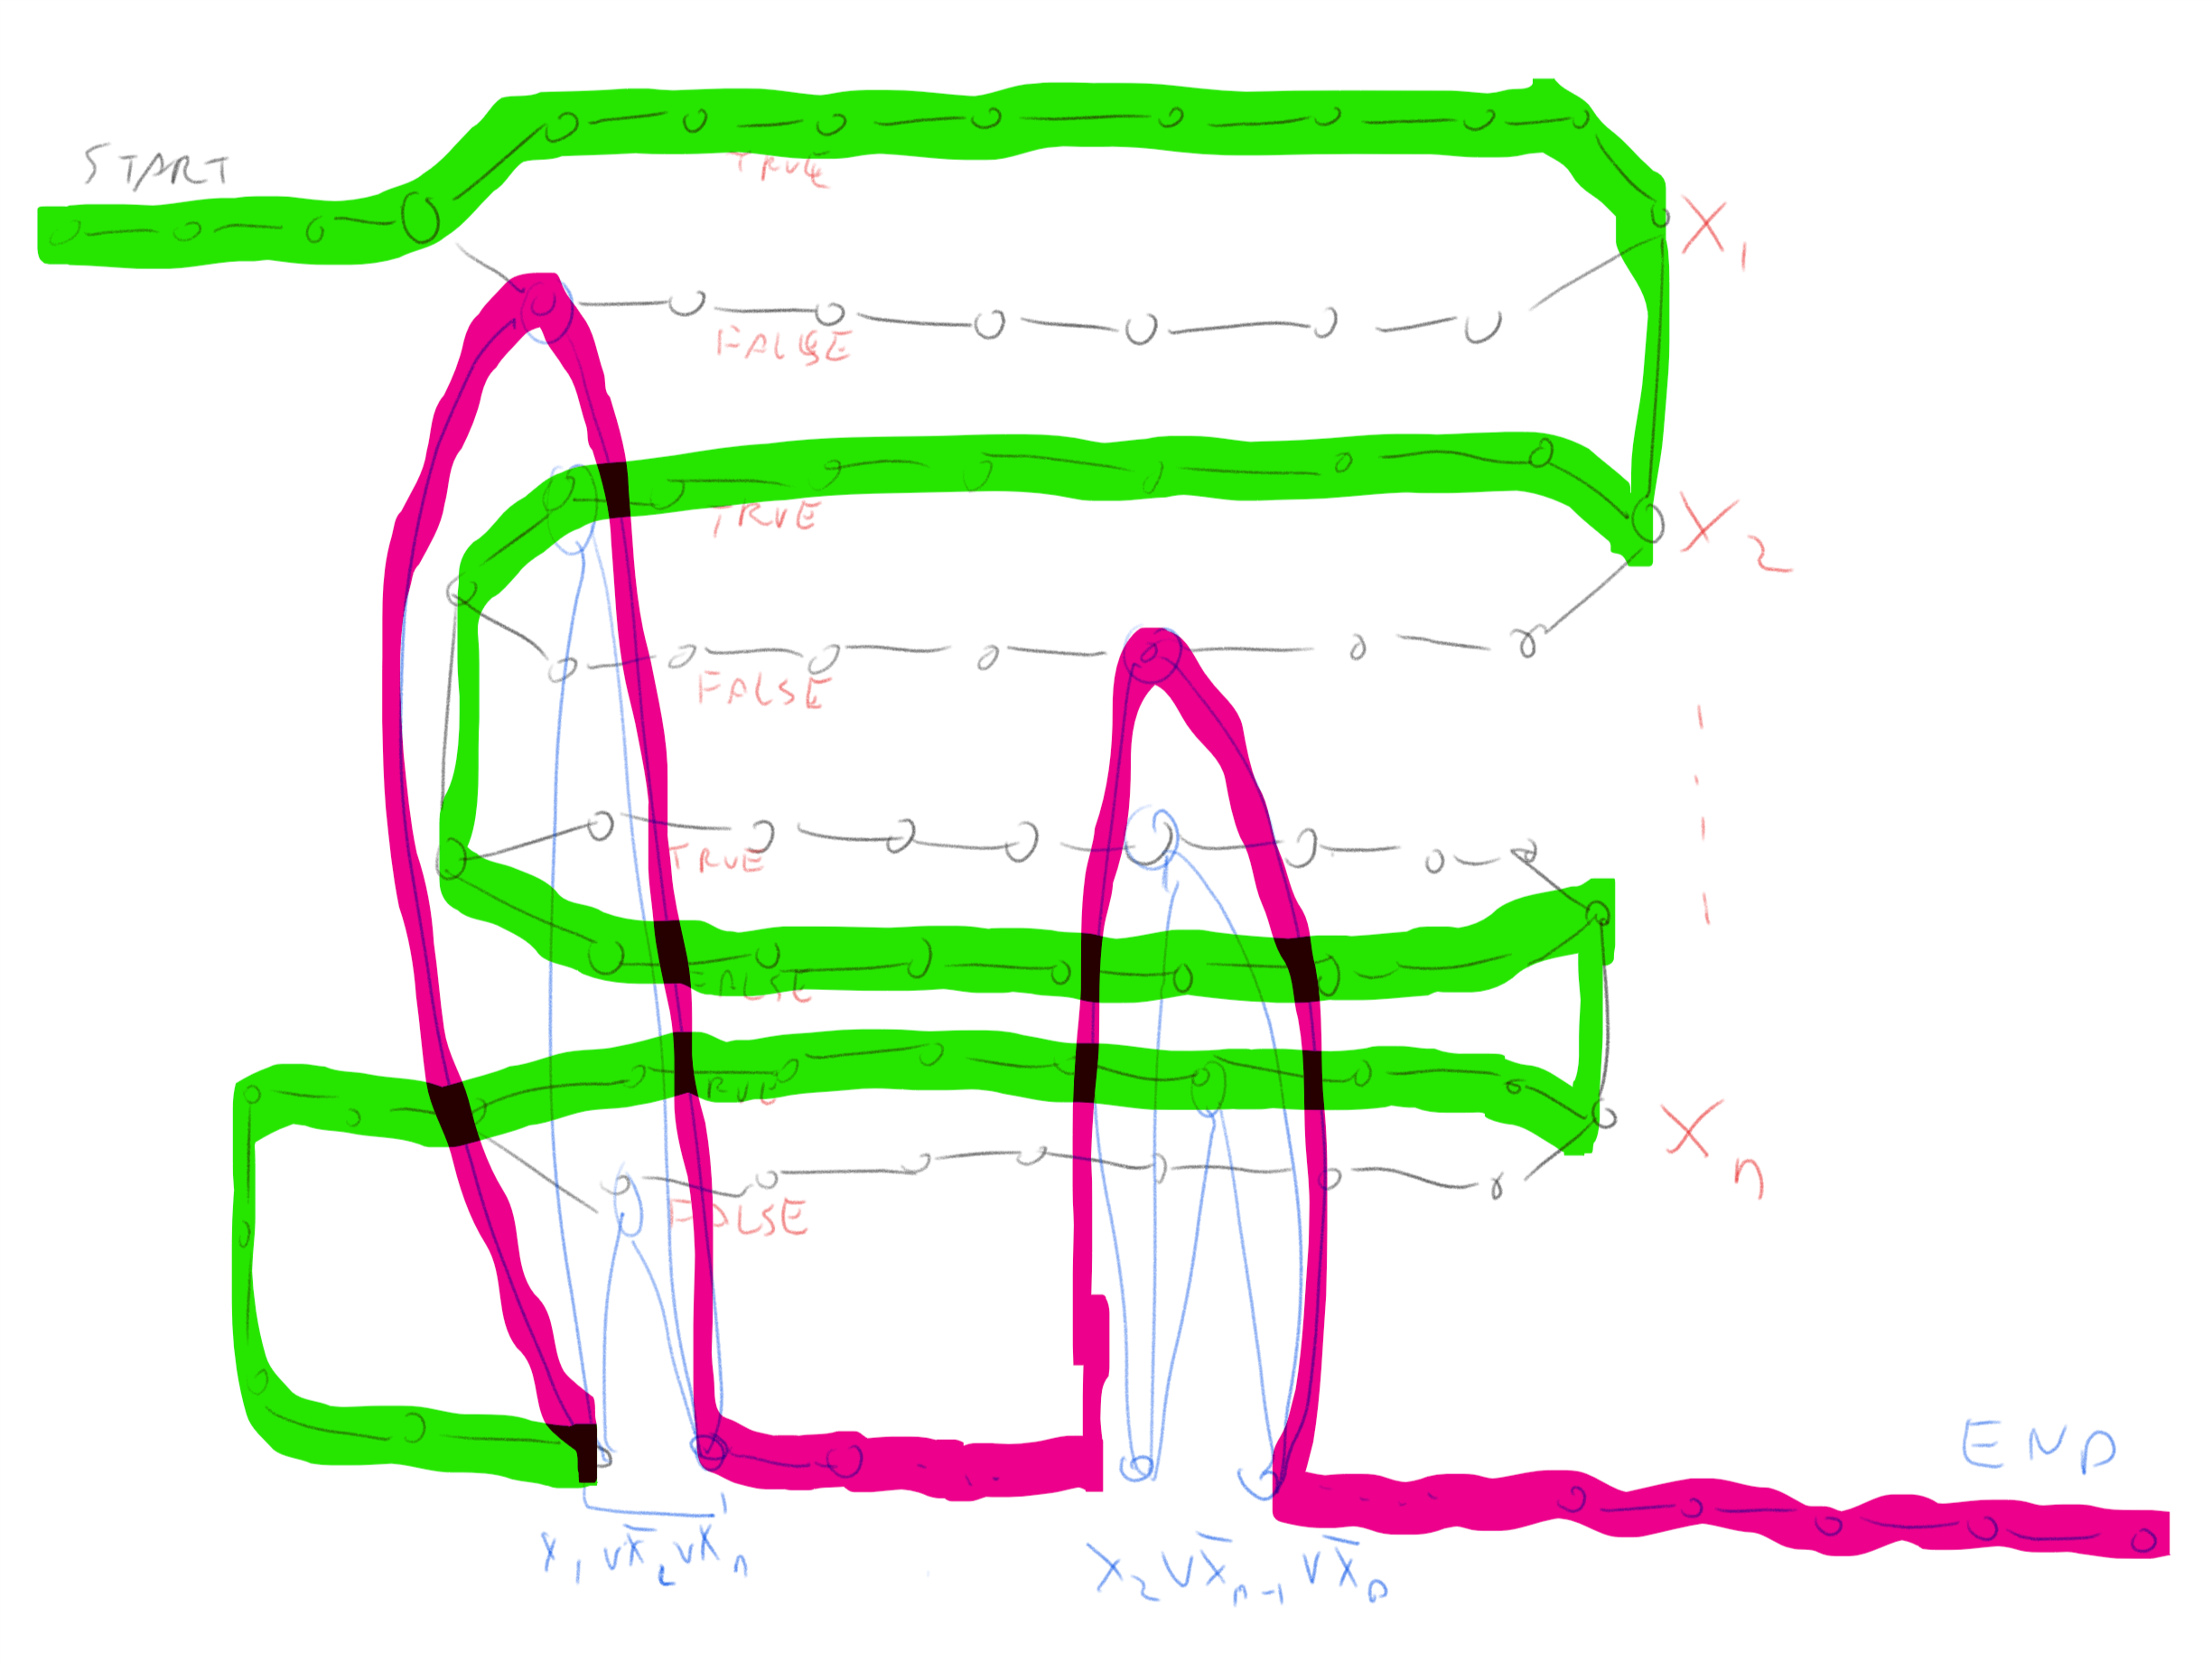 The graph above with the longest path marked on it, the part of the path corresponding to variables is in green and part corresponding to the clauses is in pink.